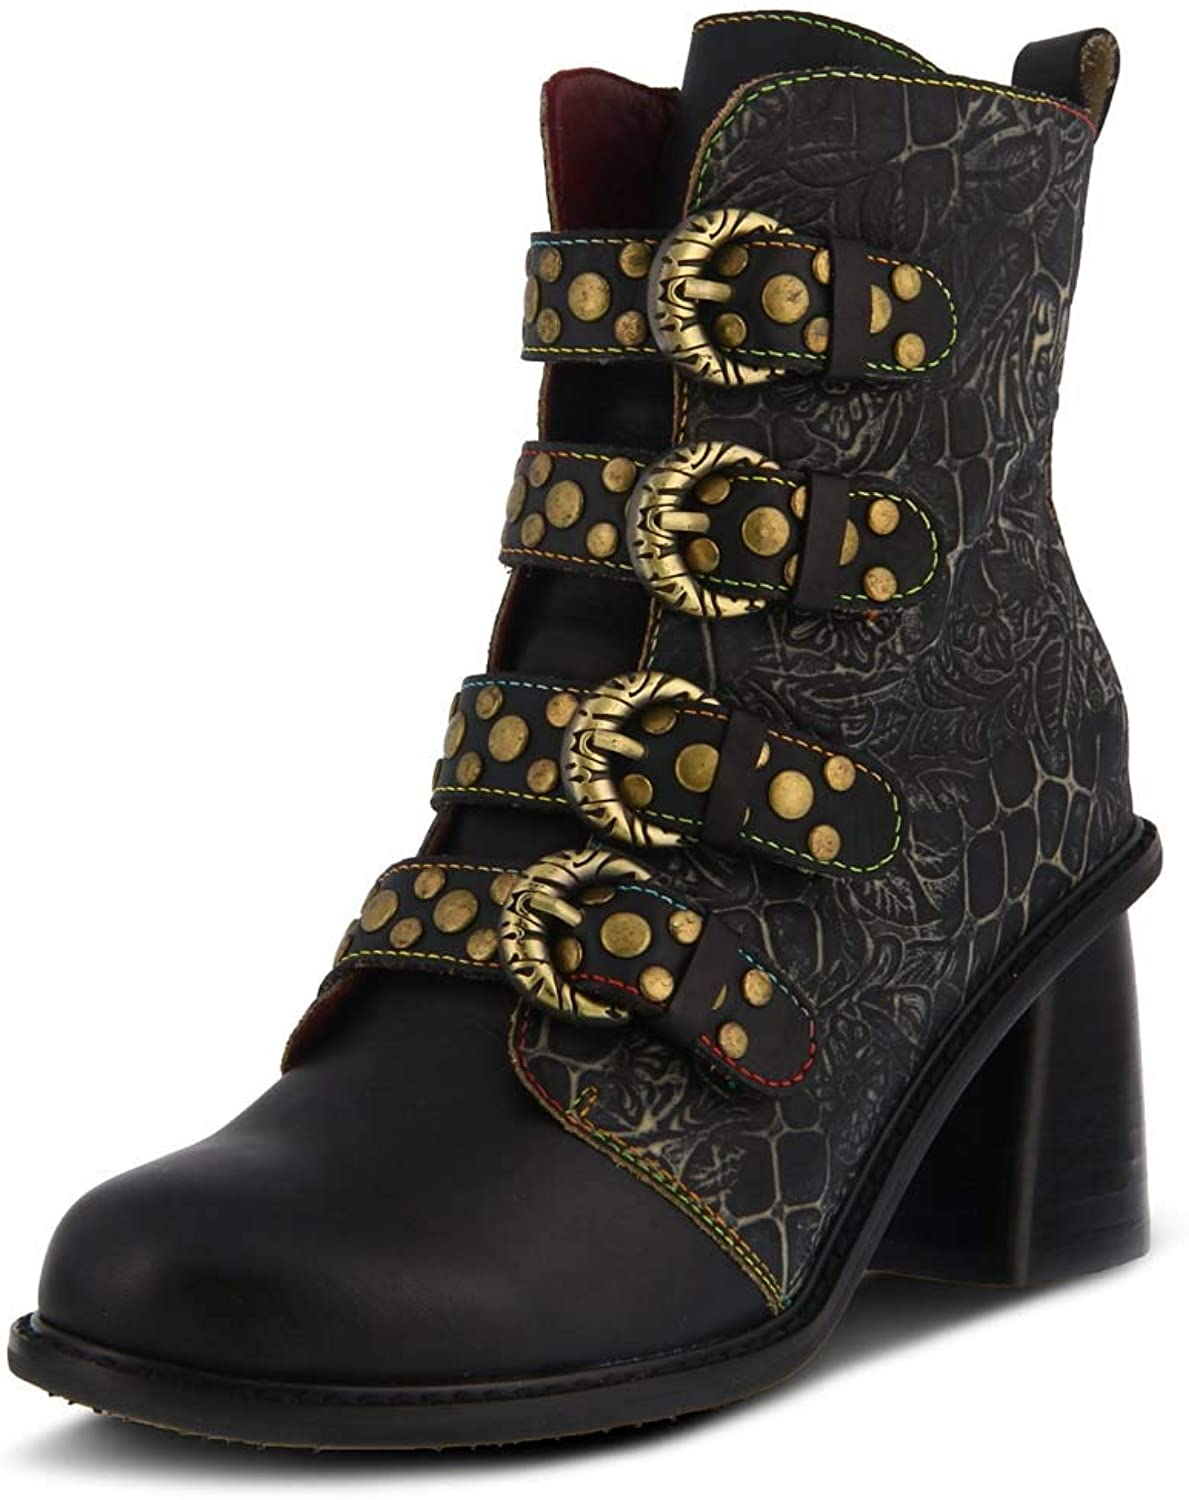 L`Artiste by Spring Step Women's Leather Boots Wonderland